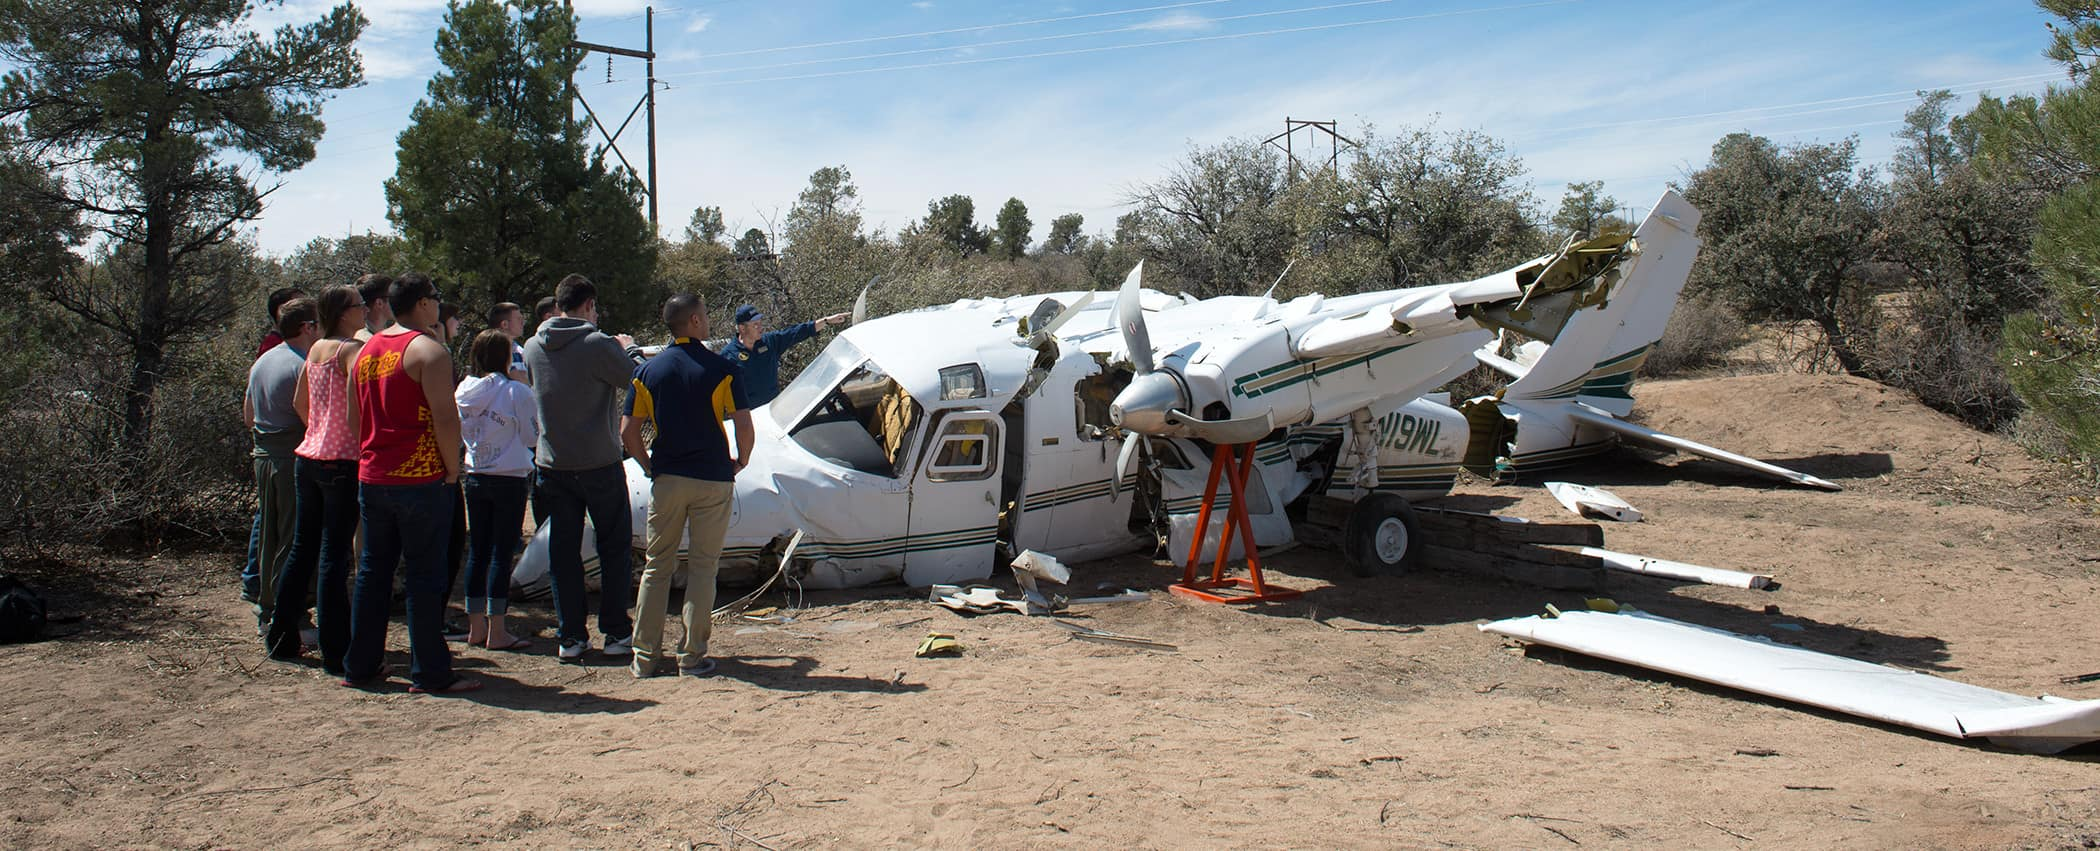 A group of students gather near a crashed plane